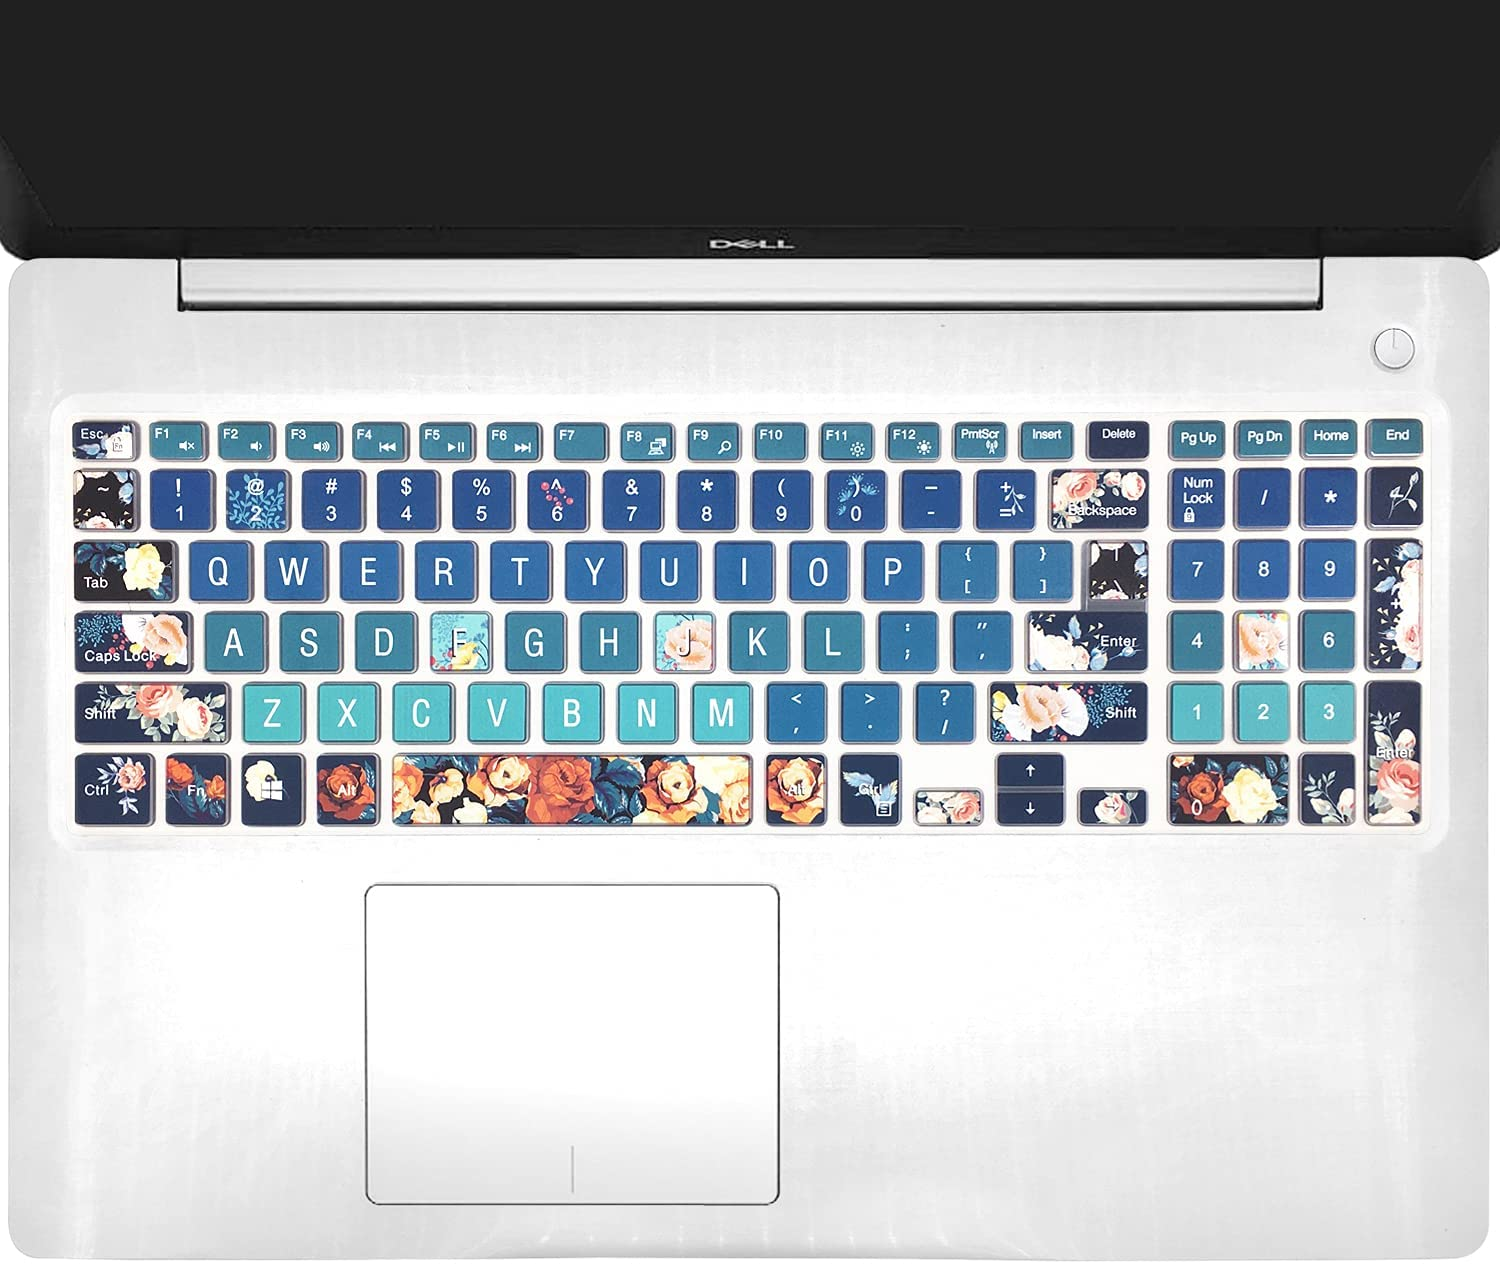 Keyboard Cover for Old Dell Inspiron 15 3000 5000 15.6'' Series, Dell G3 15 17 Series, Dell G5 15 Series, Dell G7 15 17 Series, Insprion 17 5000 Series, Rose